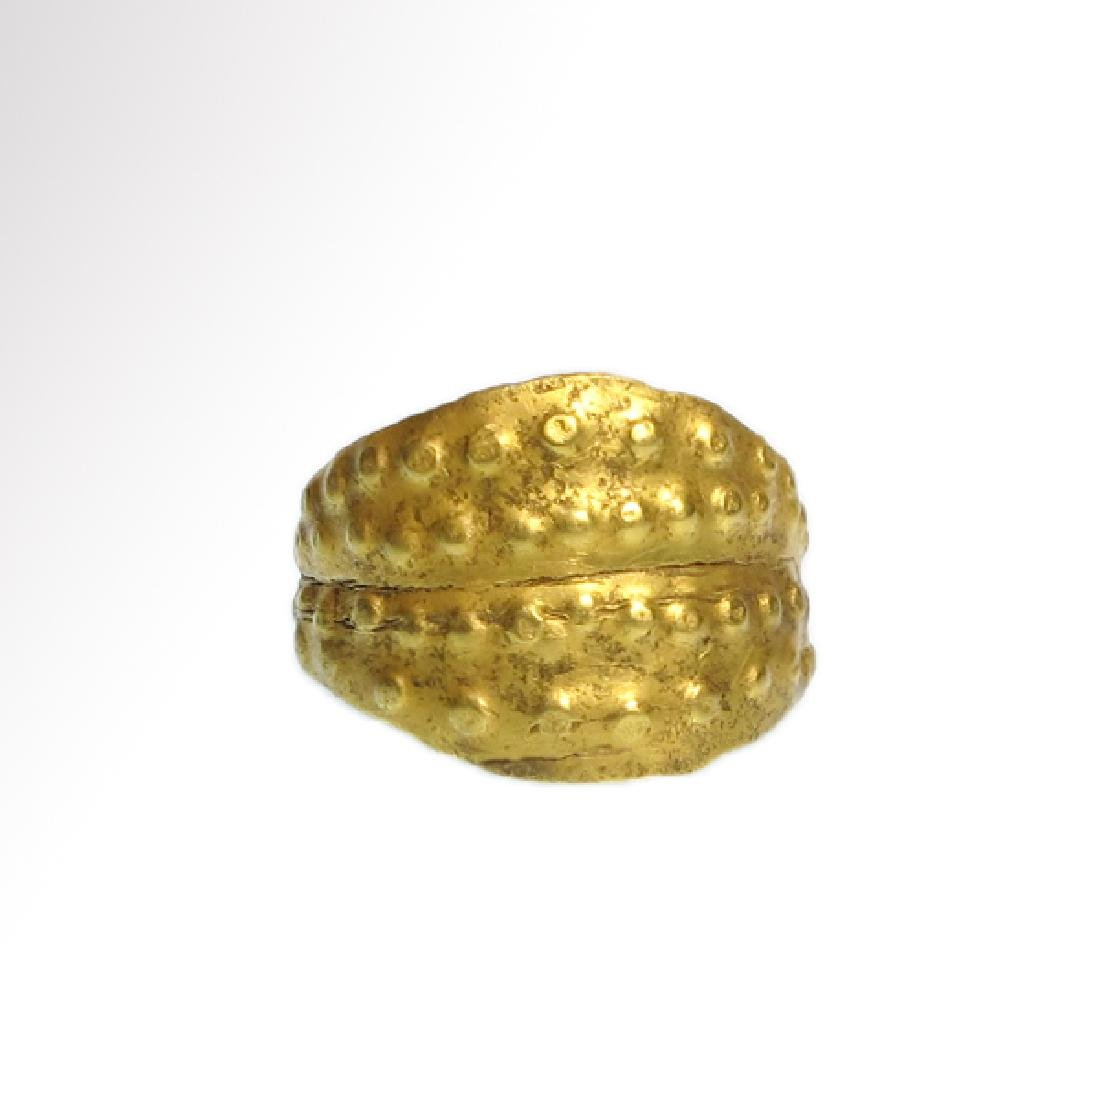 Viking Gold Ring with Punched Decoration, 11th Century - 2